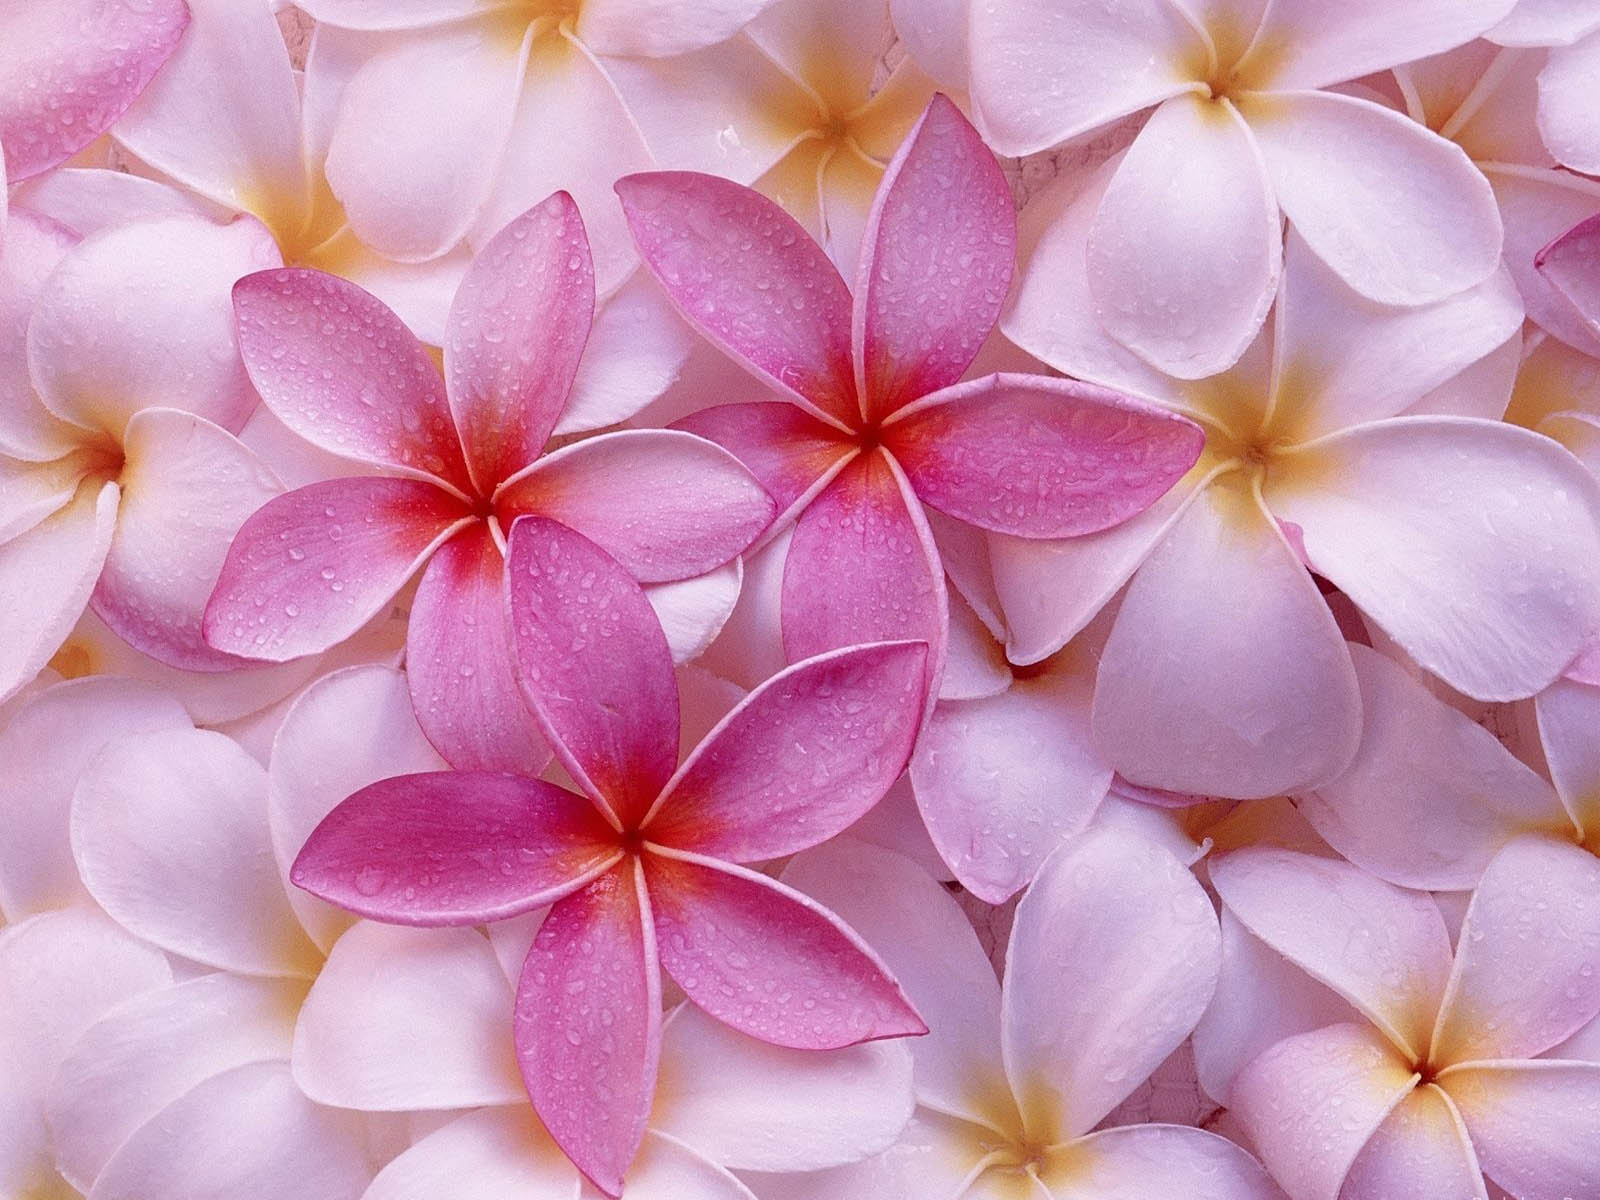 47 free wallpaper pink flowers on wallpapersafari wallpaper pink flowers on wallpapersafari